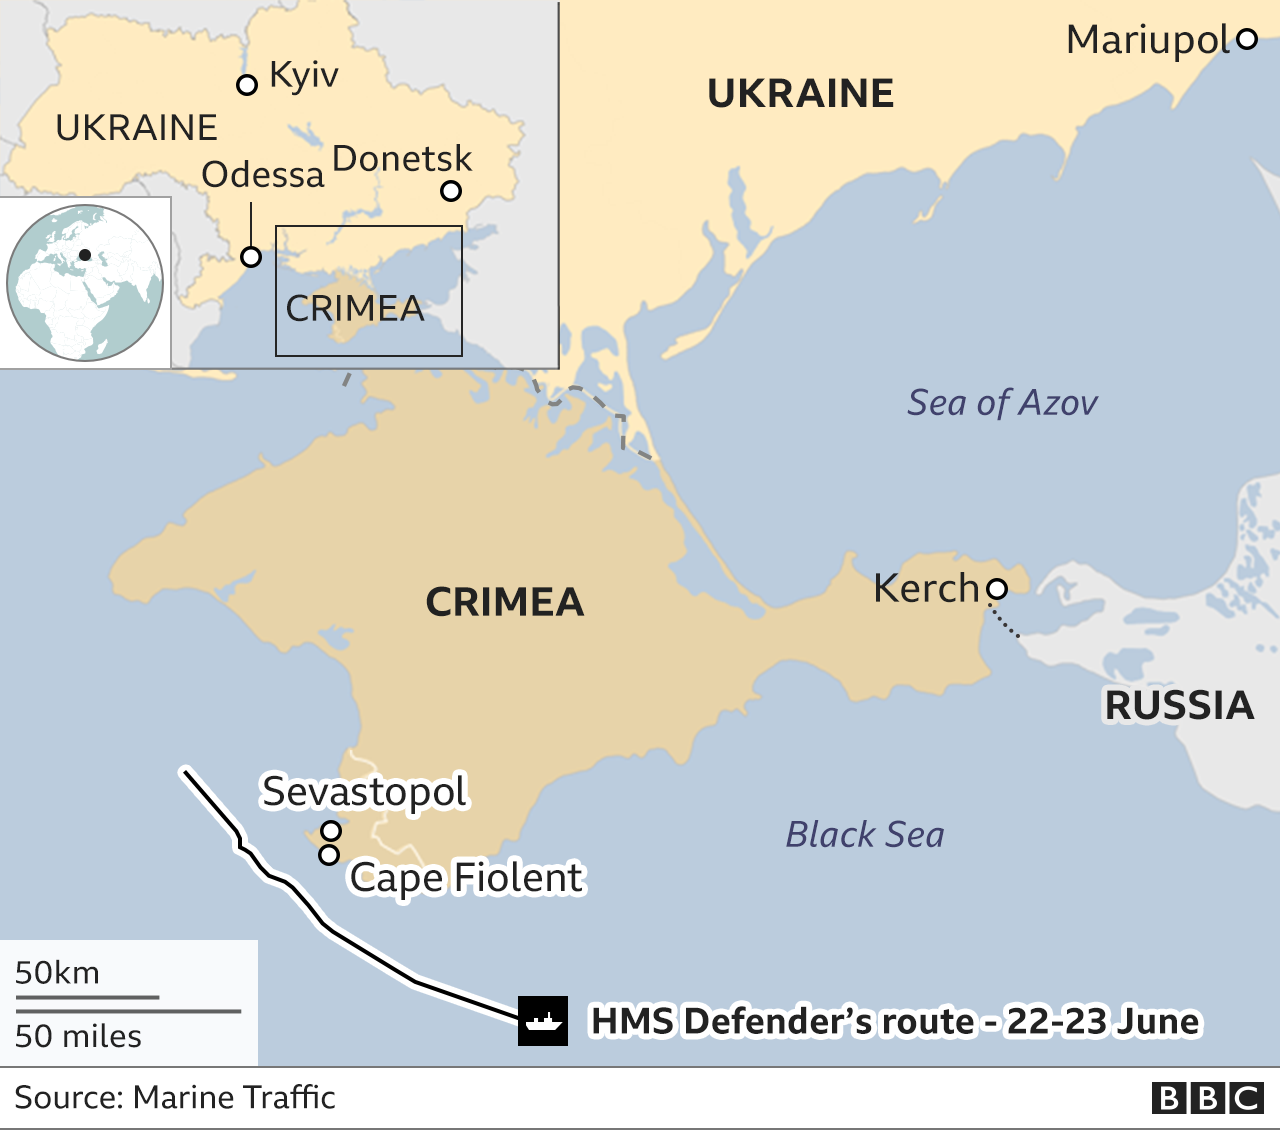 Map showing Crimea, Ukraine and Russia and the warship's path. Updated 24 June